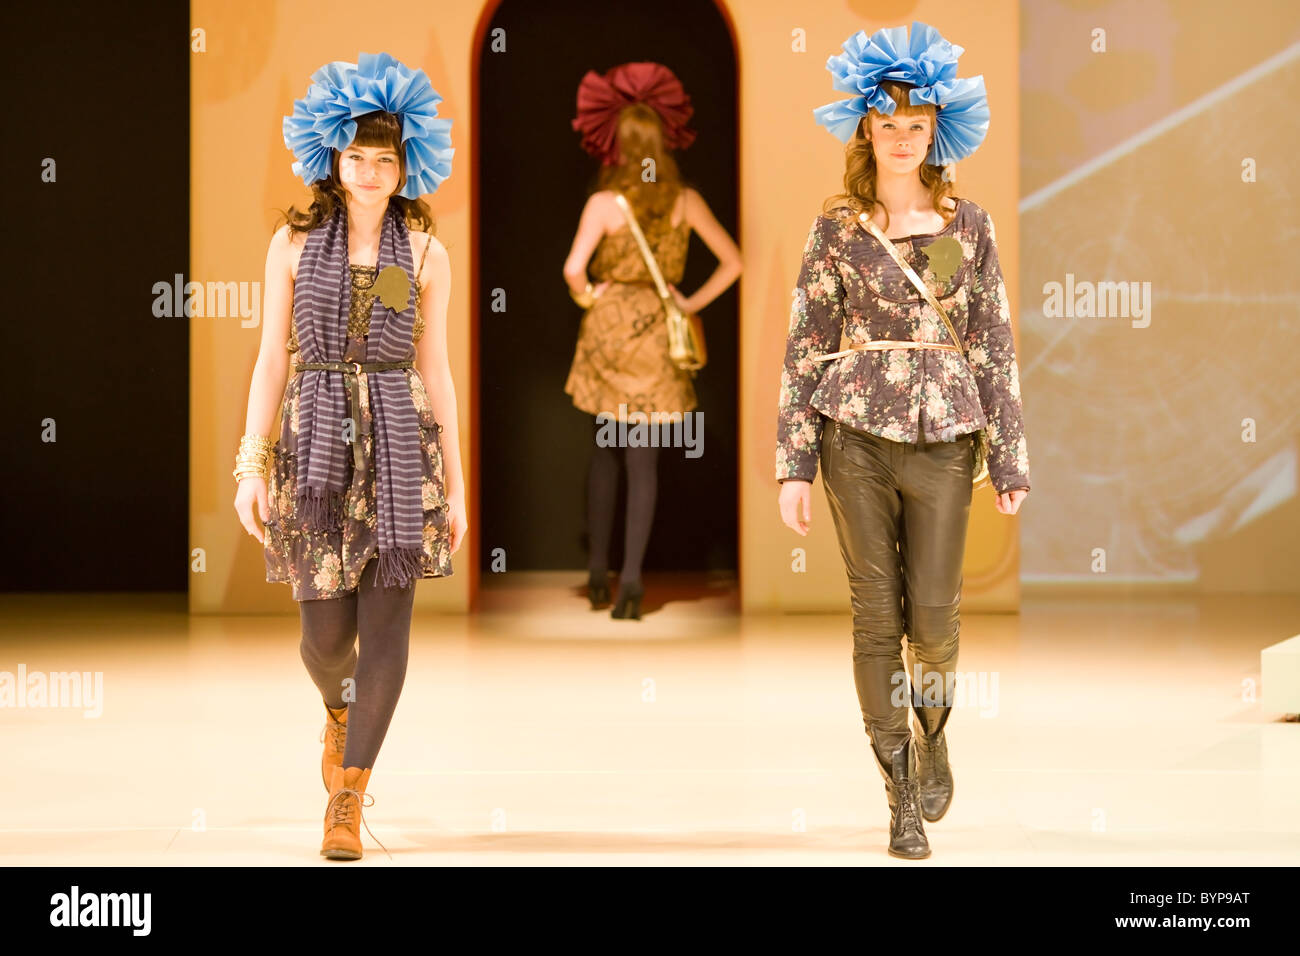 6f667202c79 Two women showing modern everyday dress at Copenhagen International Fashion  Fair